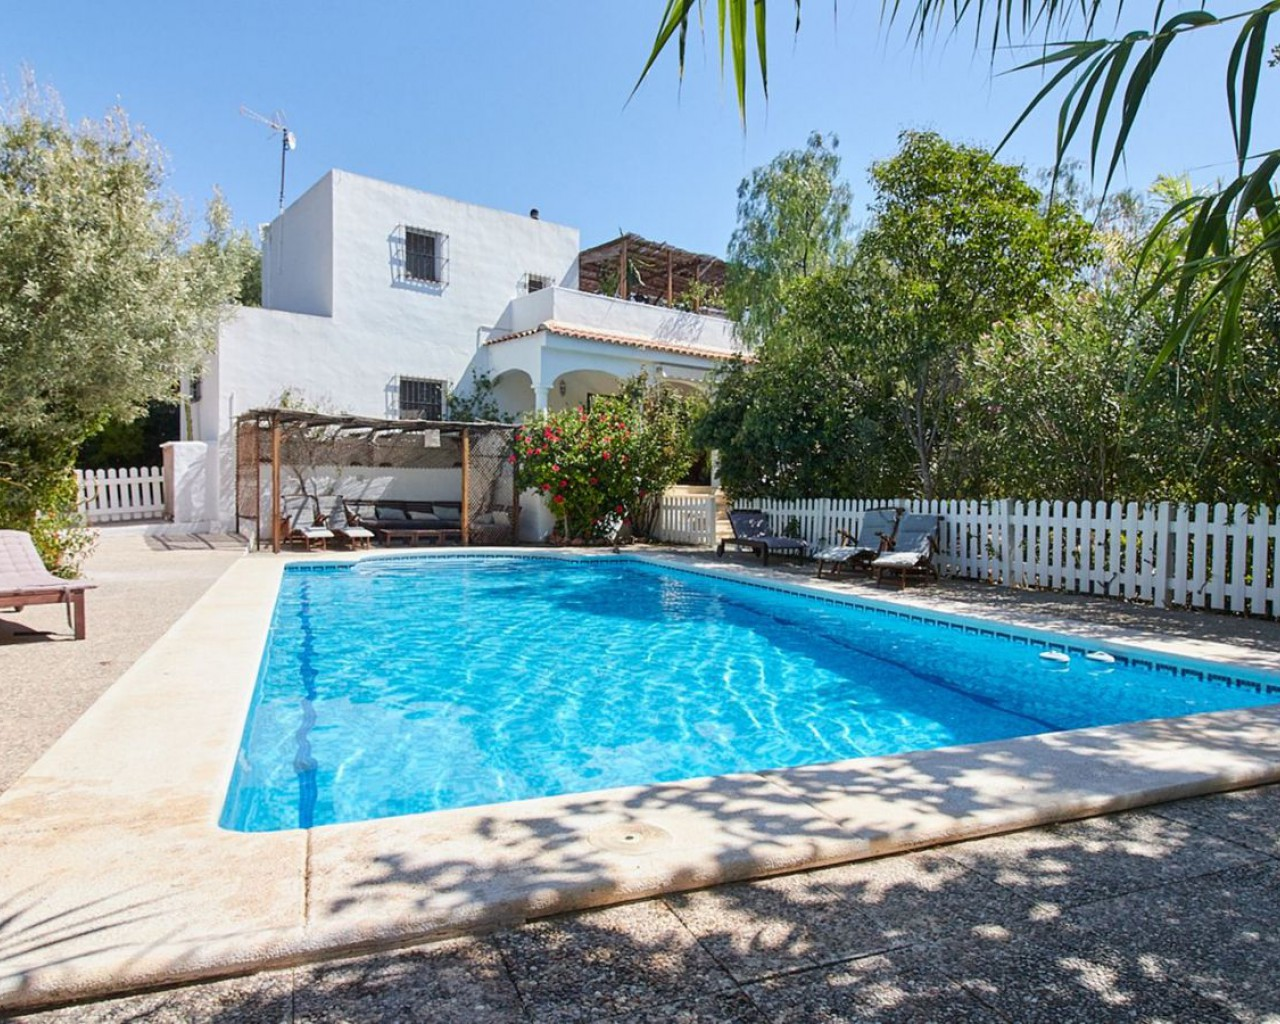 Villa - Resale - Alicante City - Alicante